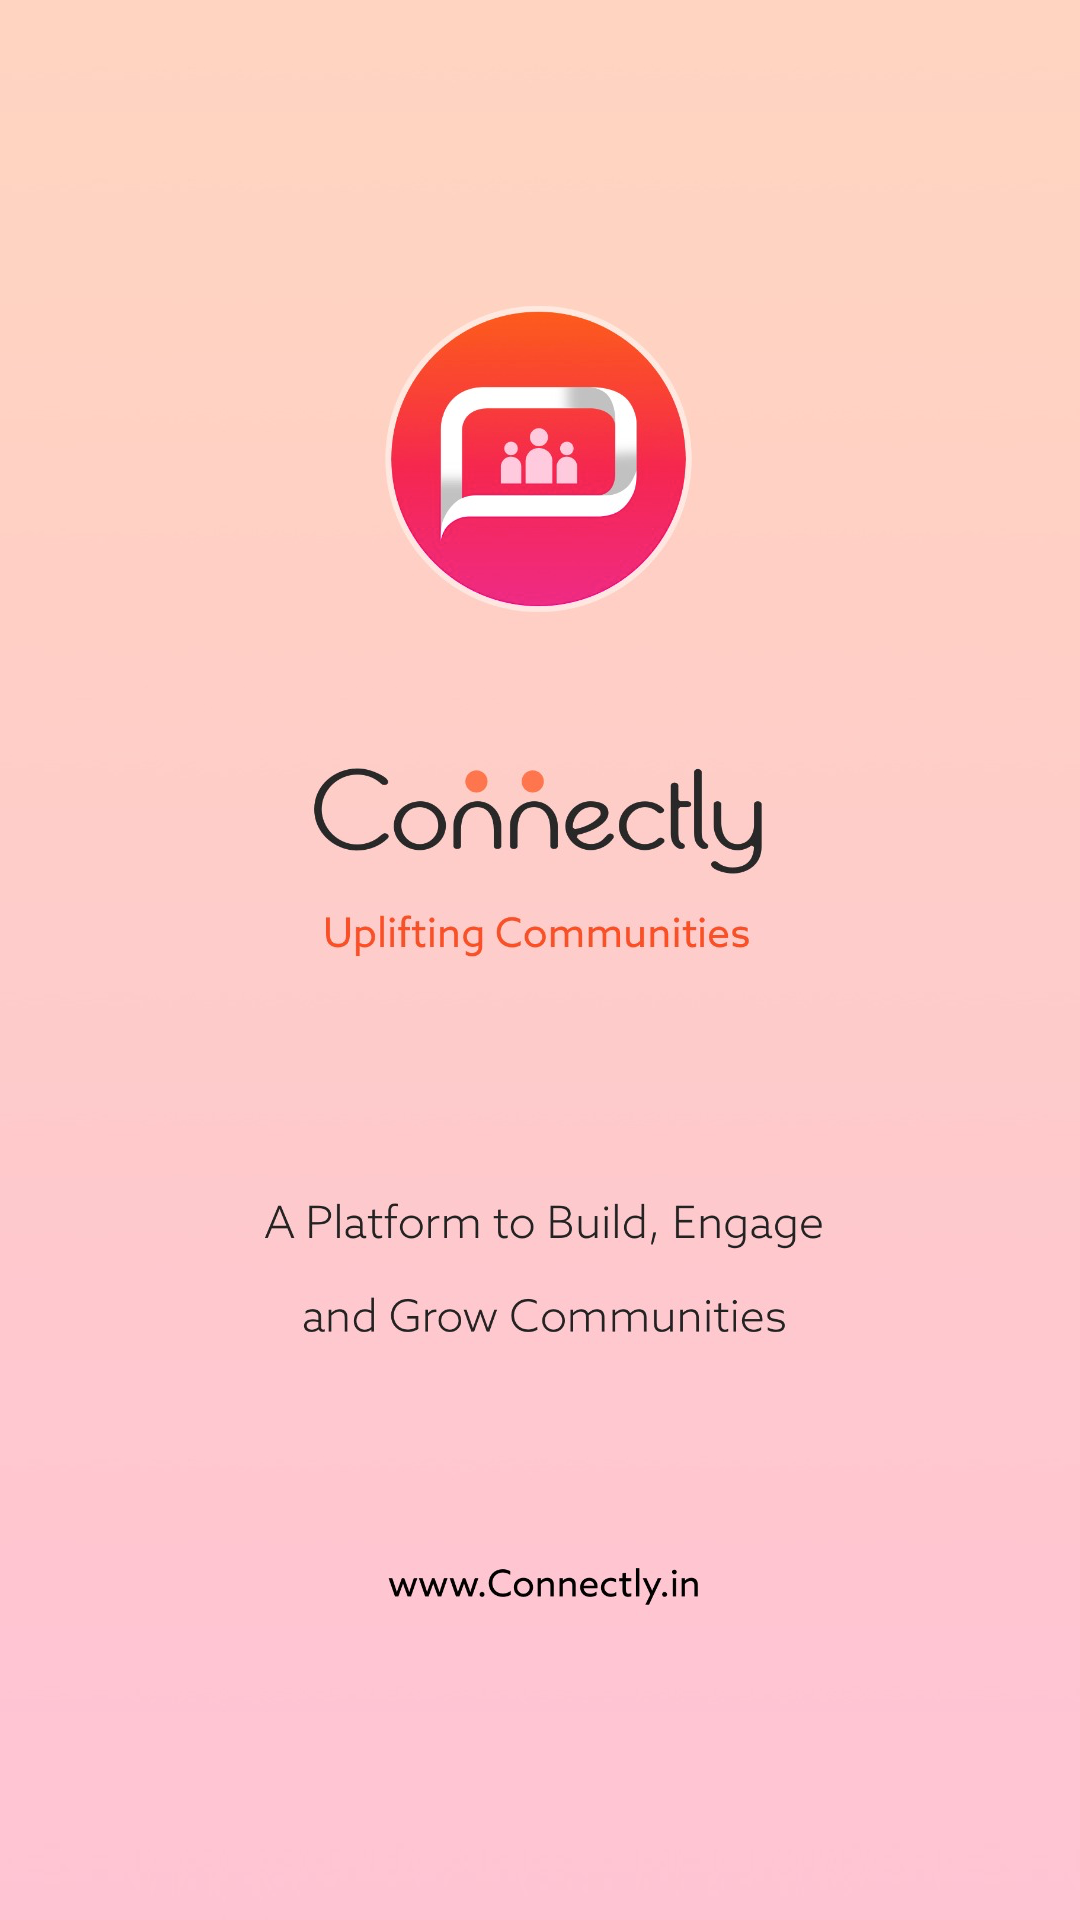 About Us for Connectly